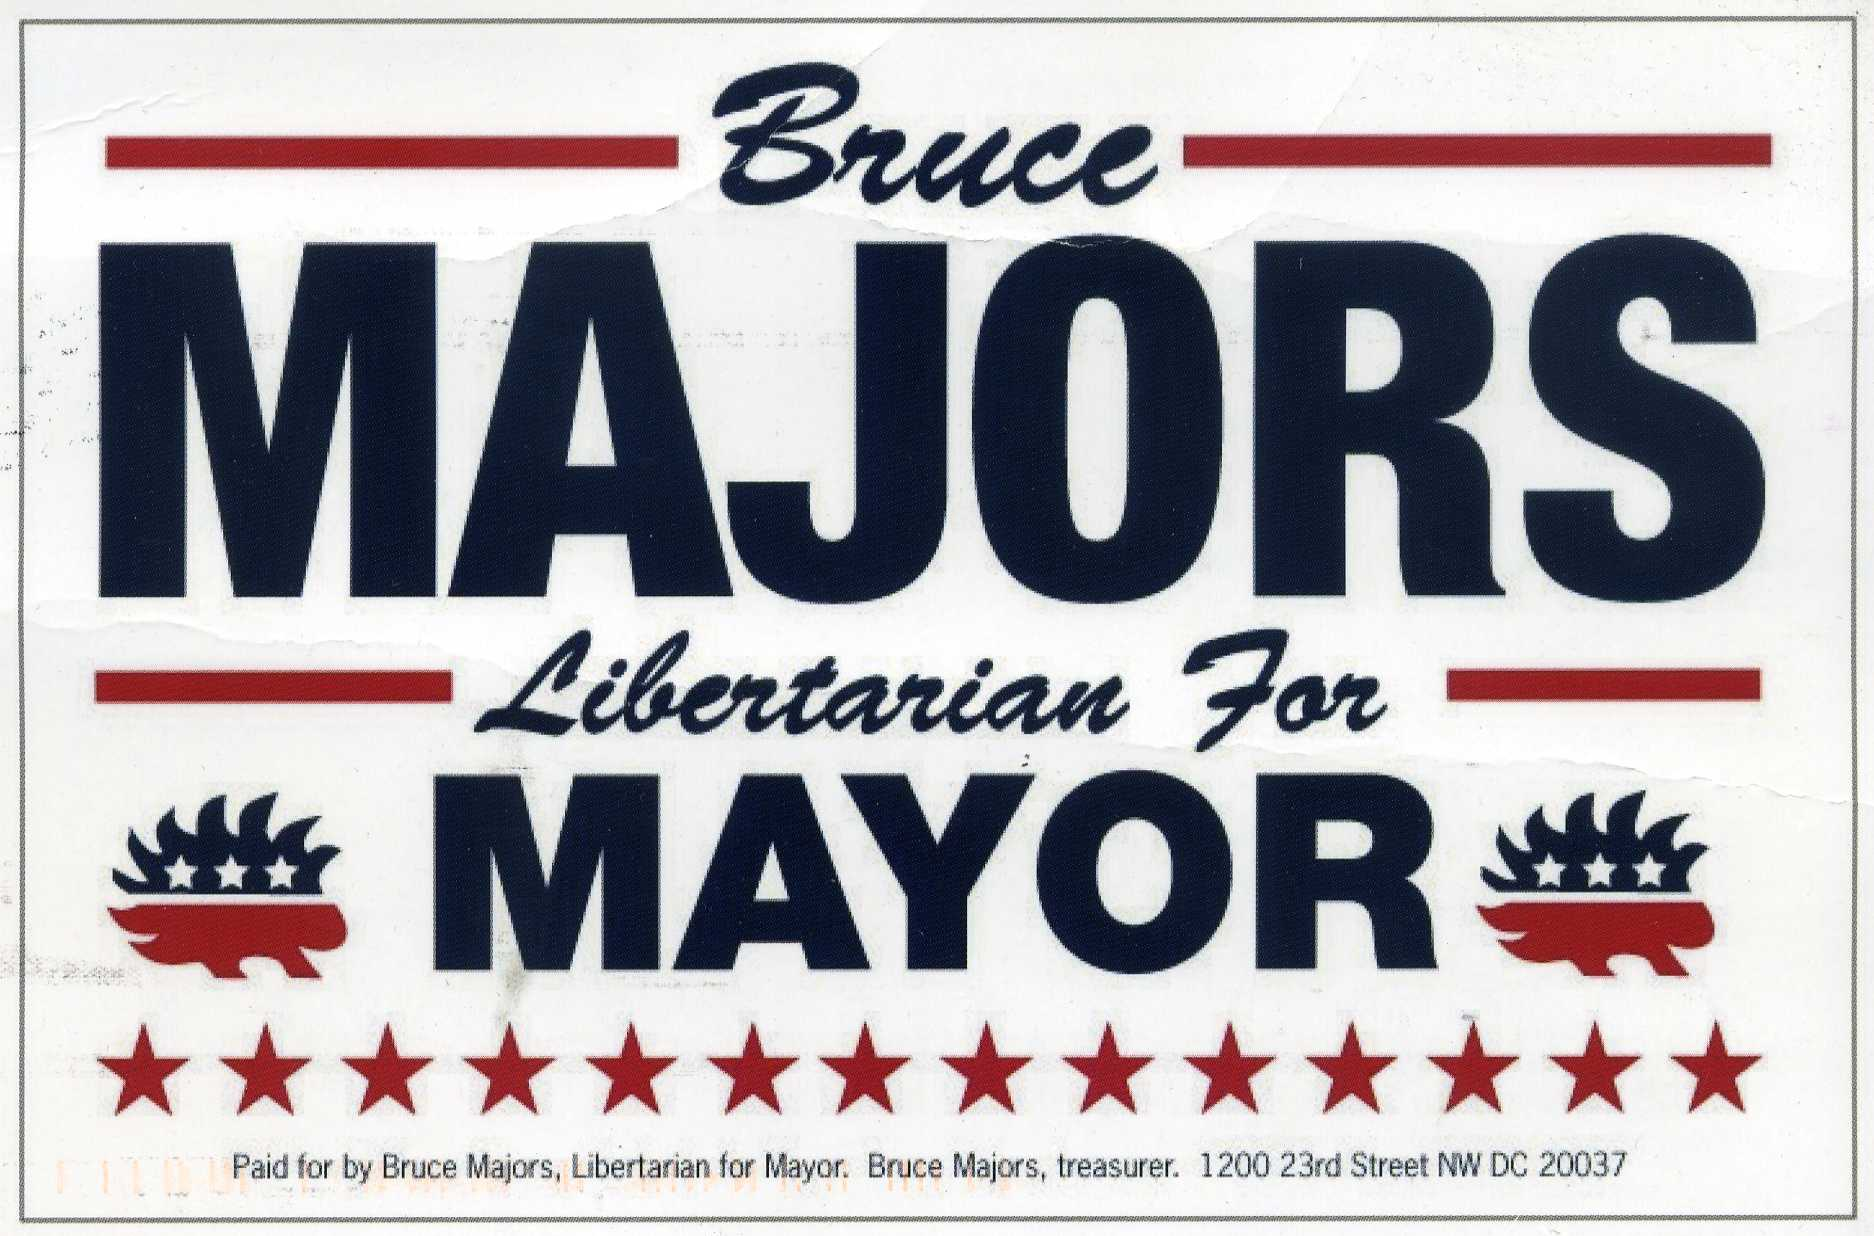 Adrian Salsgiver Endorses Bruce Majors for Mayor